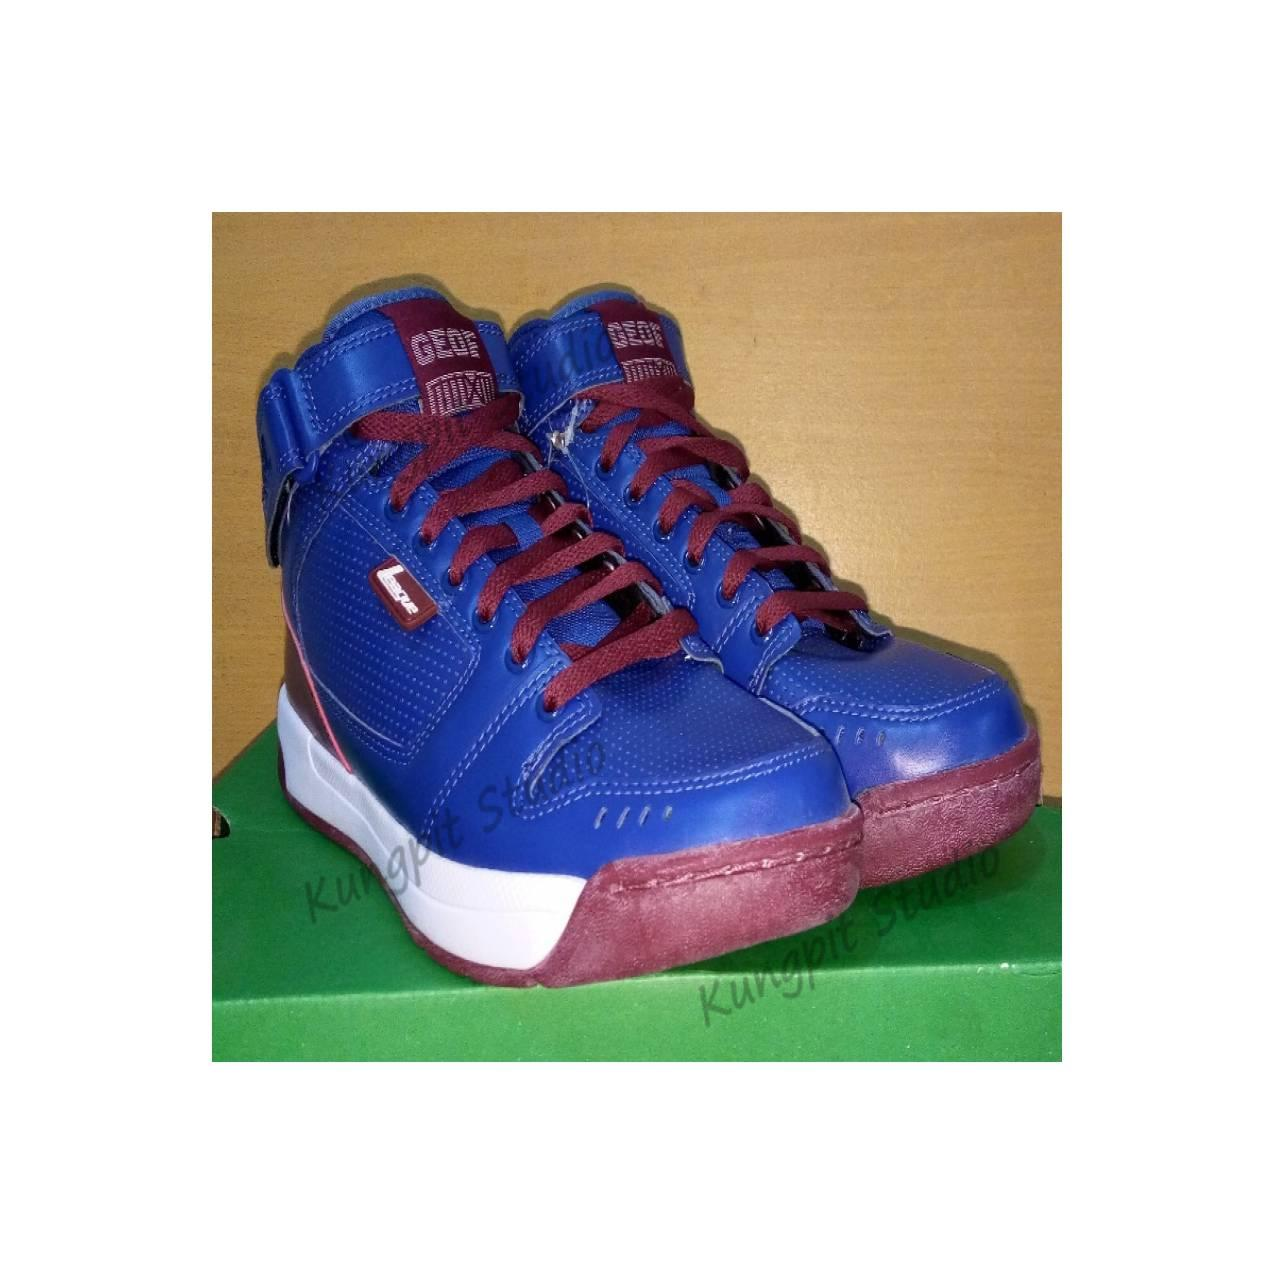 Sepatu basket / casual League Geof DBL original